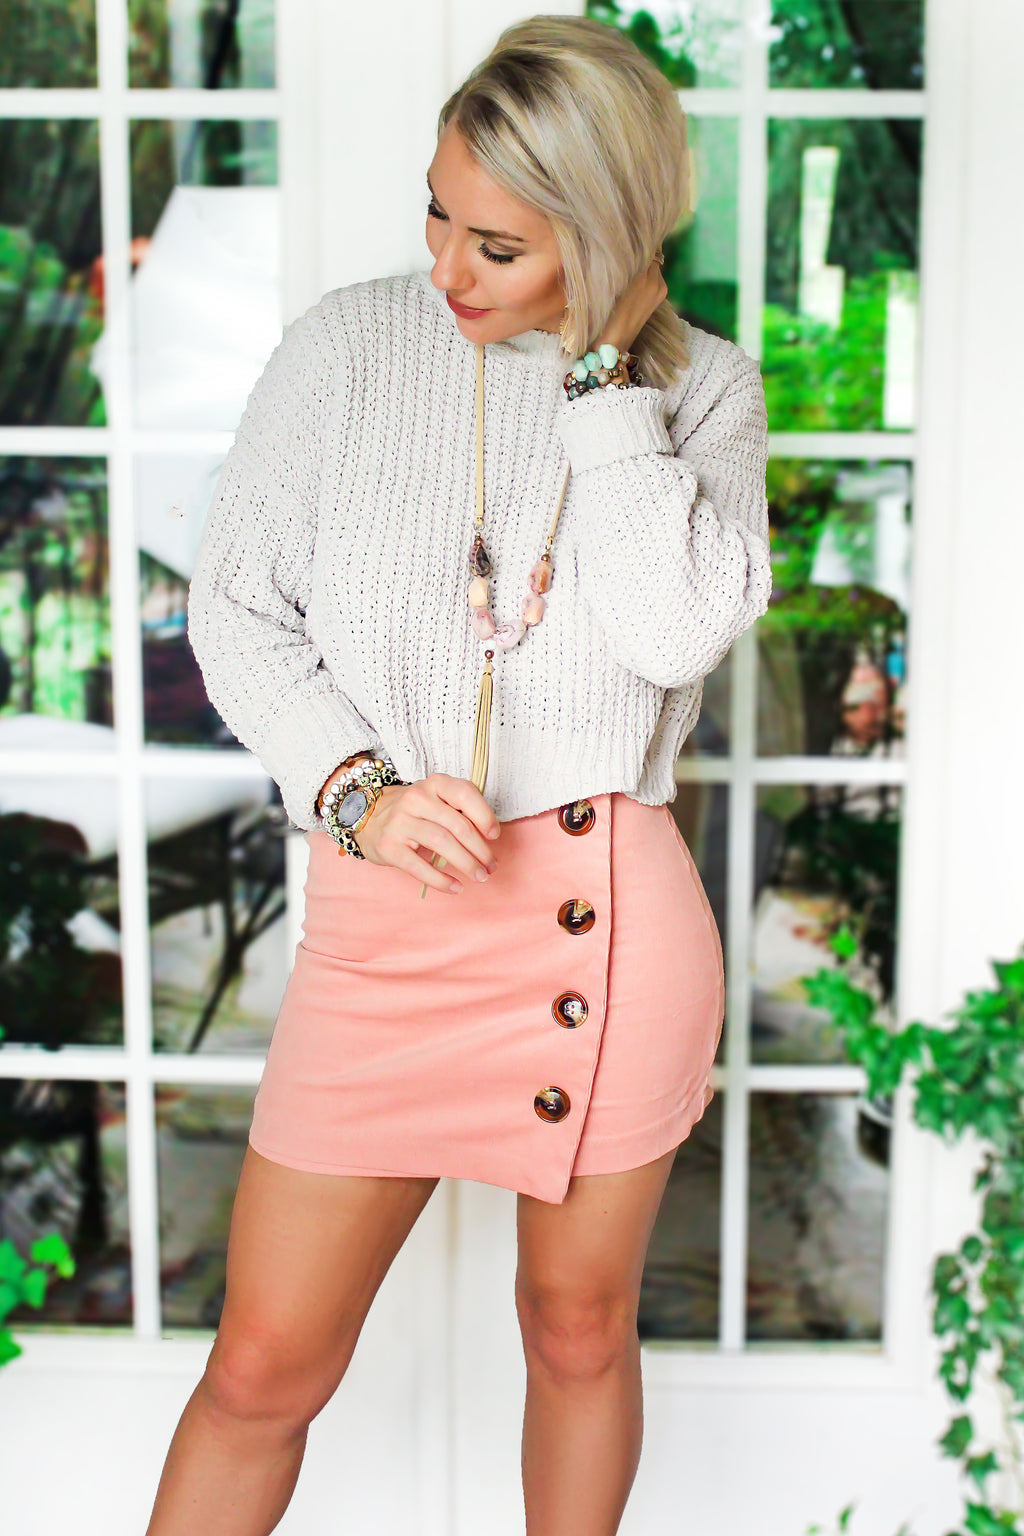 Pink Mini Skirt With Buttons - Kendry Collection Boutique - Buy Cute Skirts For Women Online Now